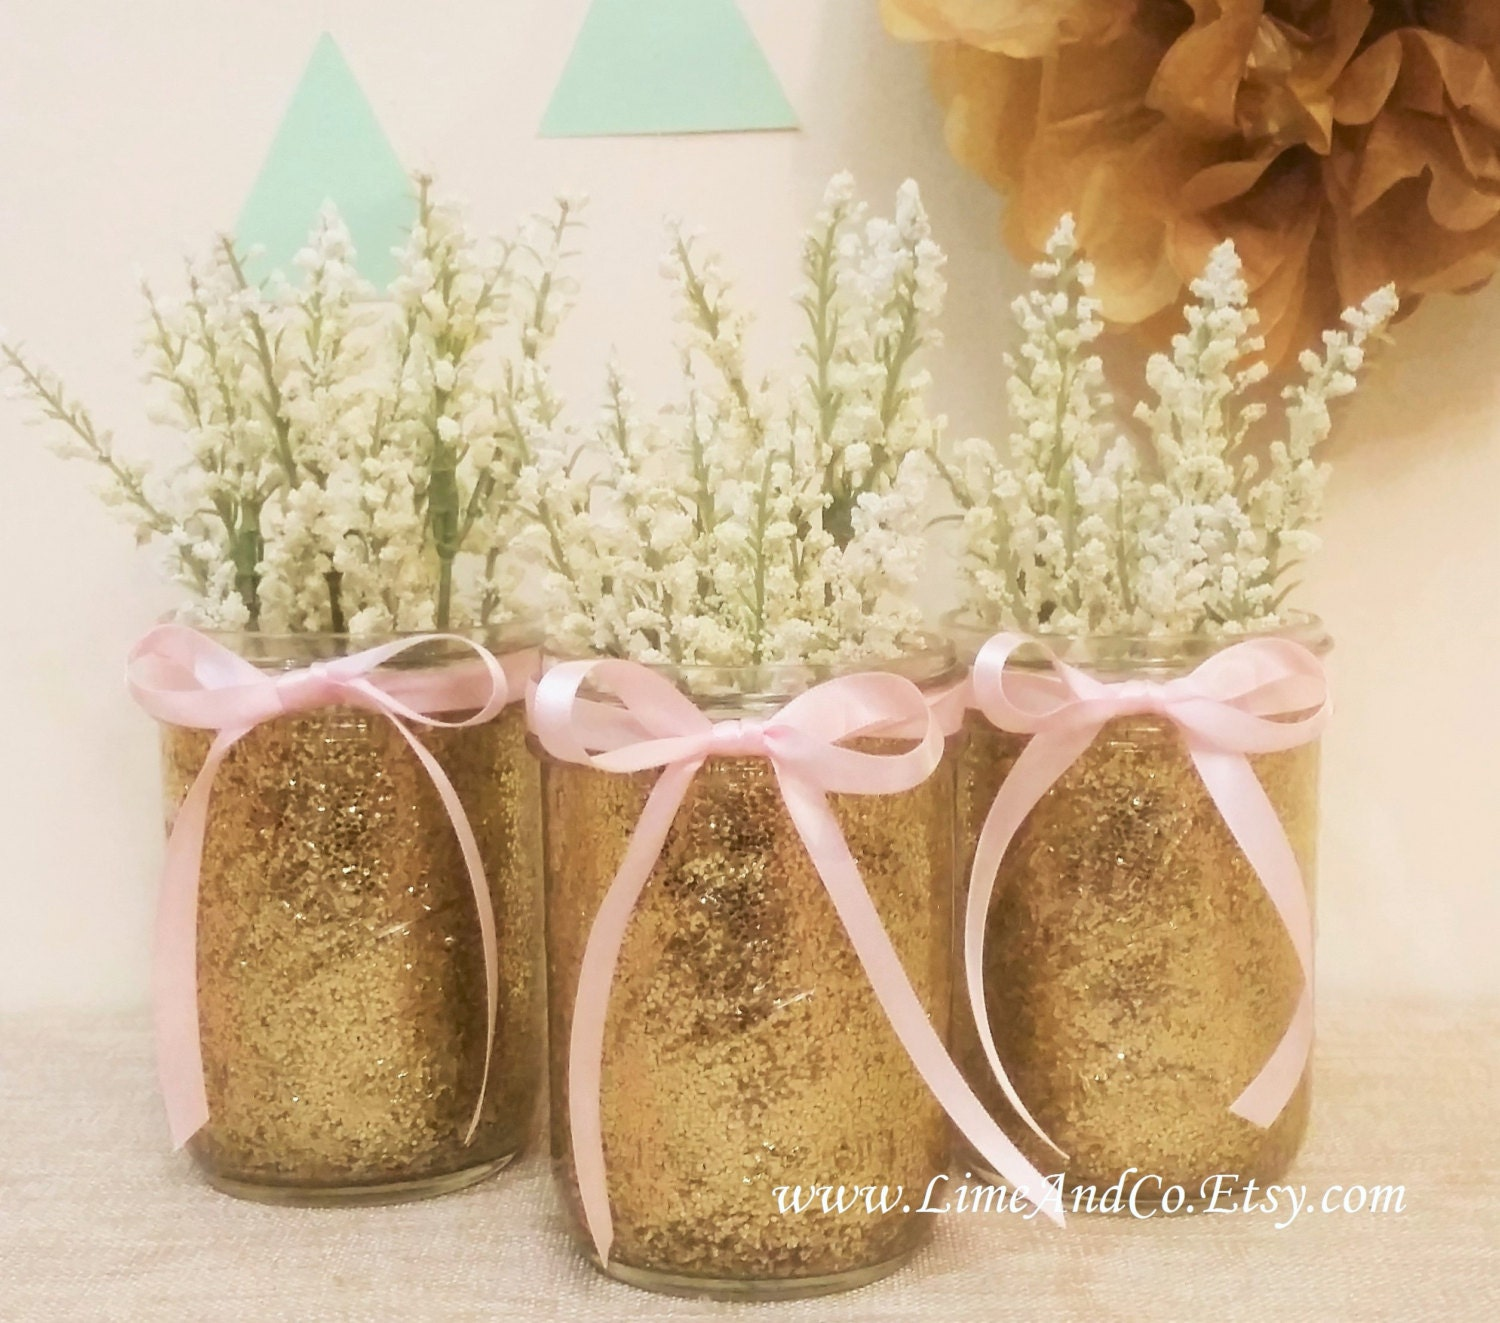 Baby shower decorations baby shower centerpieces bridal Wedding shower centerpieces